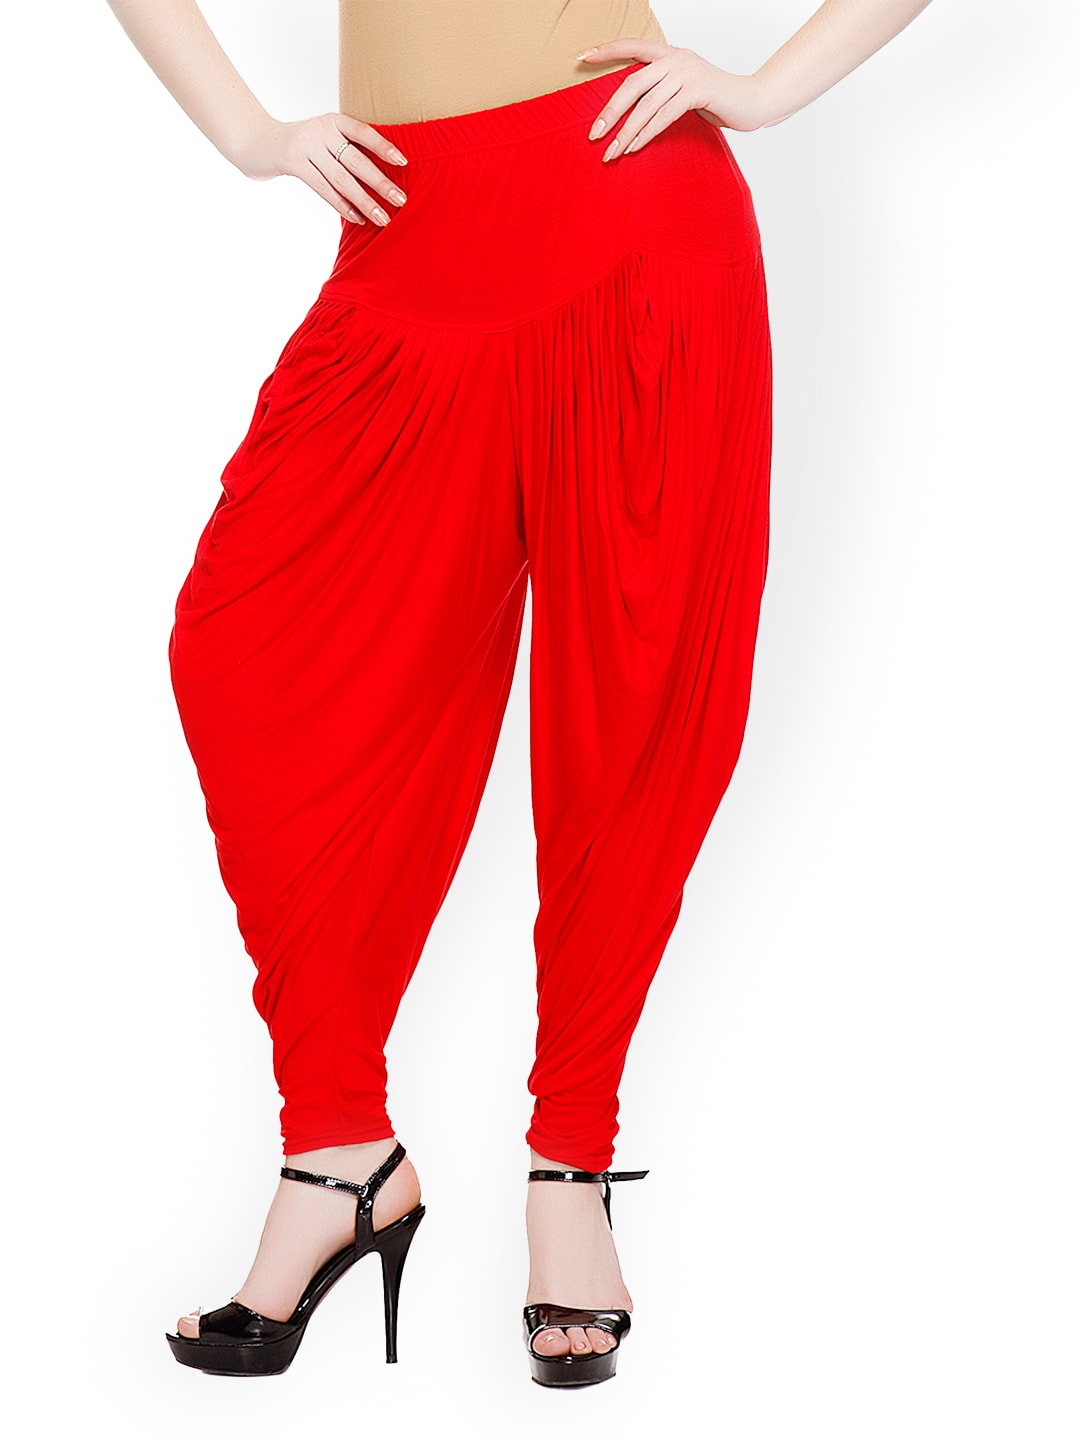 Sakhi Sang Women Red Harem Pants